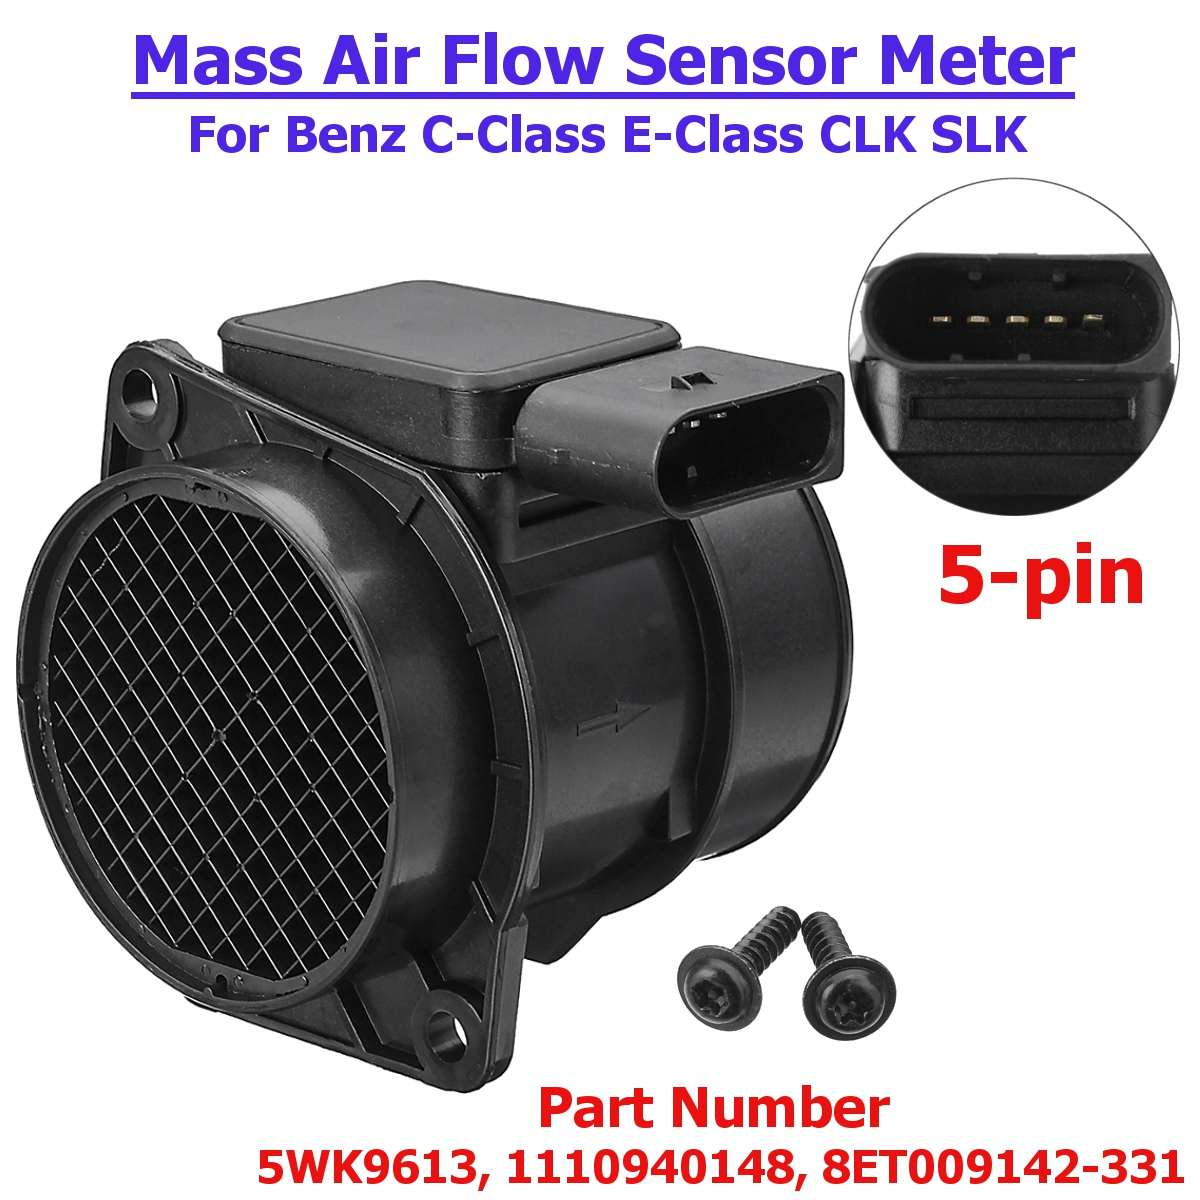 MASS AIR FLOW SENSOR FOR Mercedes W203 S202 S203 C208 W210 1110940148 5WK9613